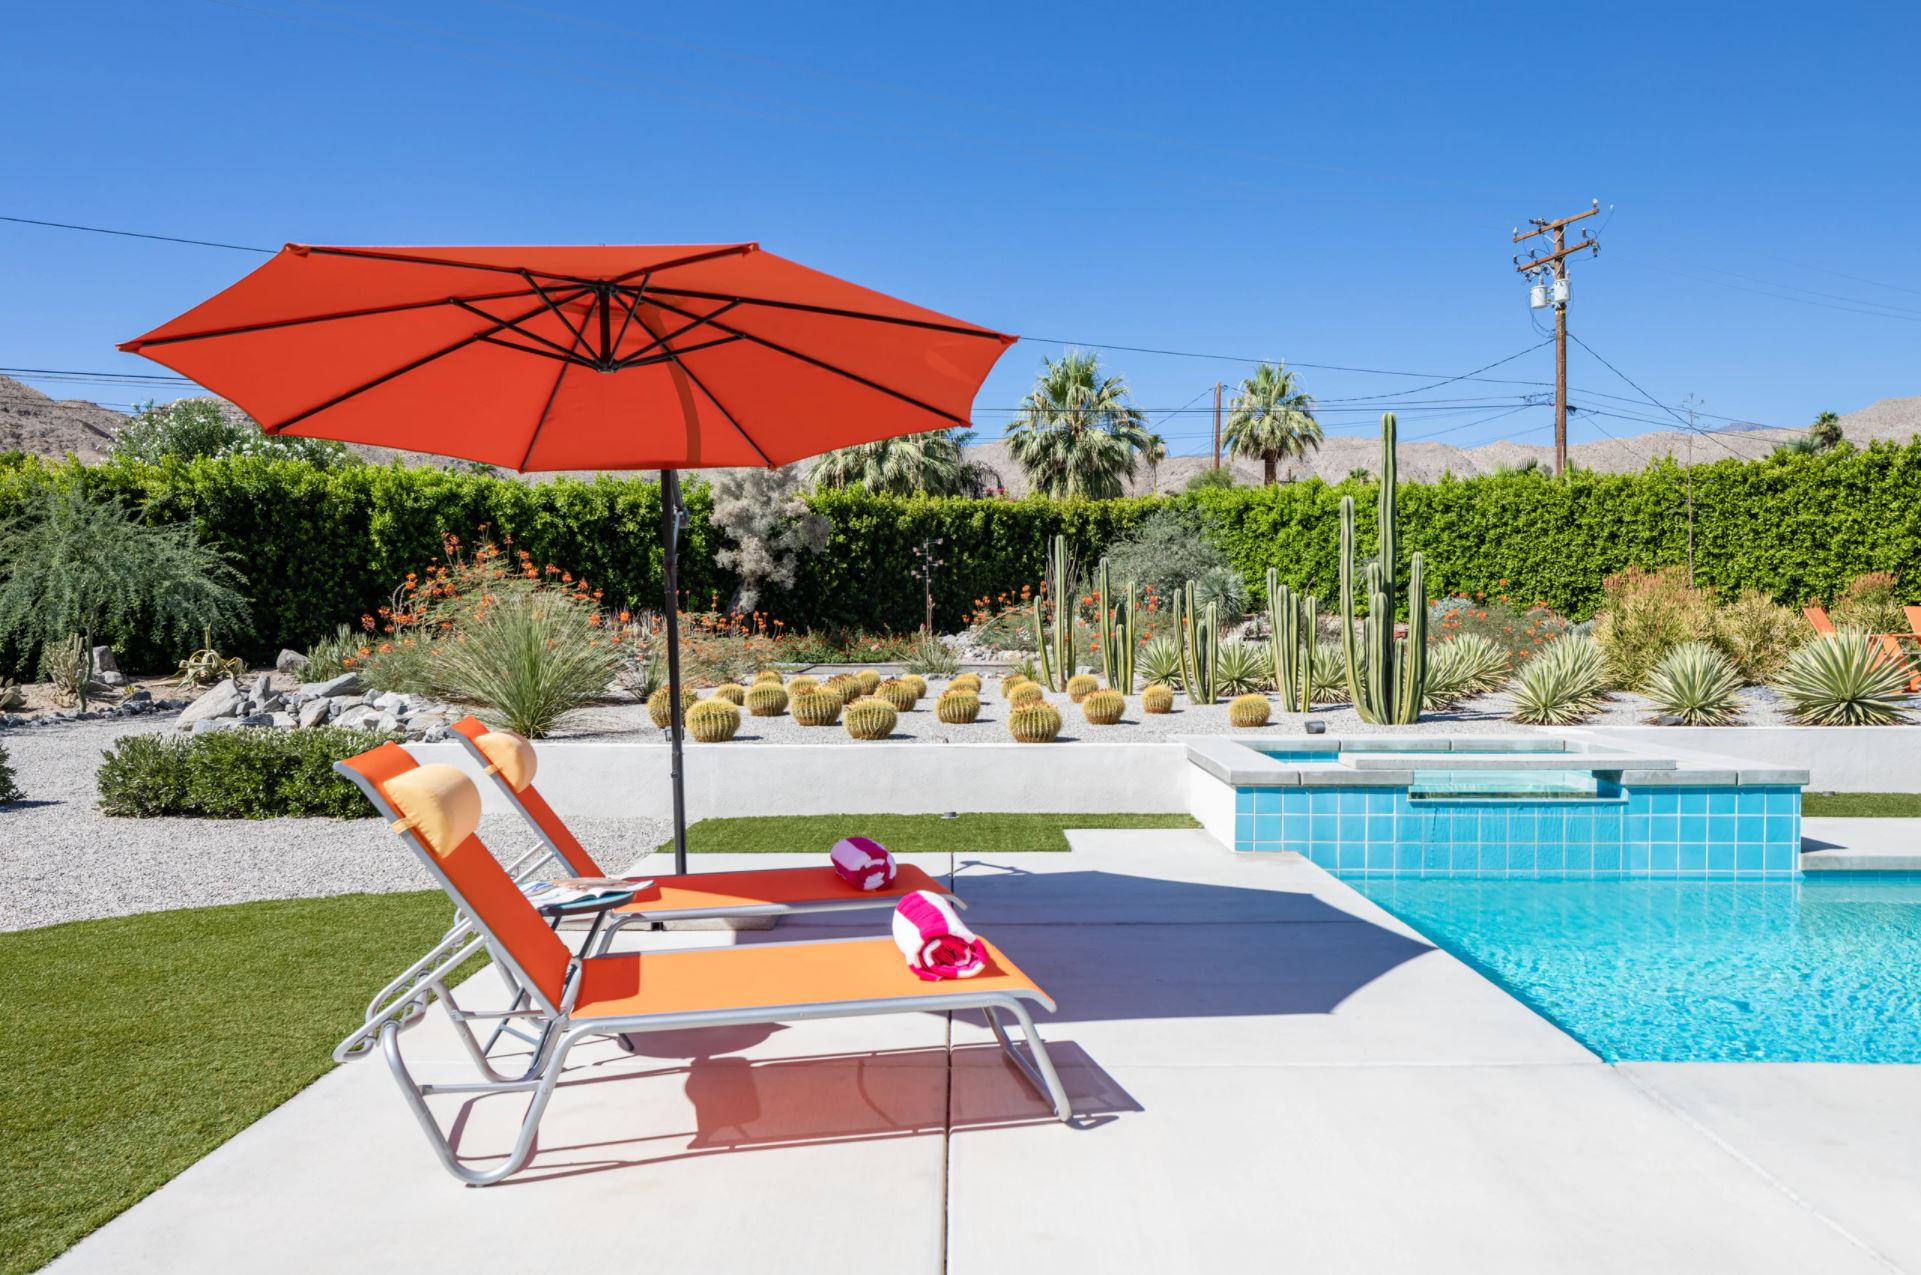 Welcome to Plum Guide - The New Quality Standard in Vacation Rentals